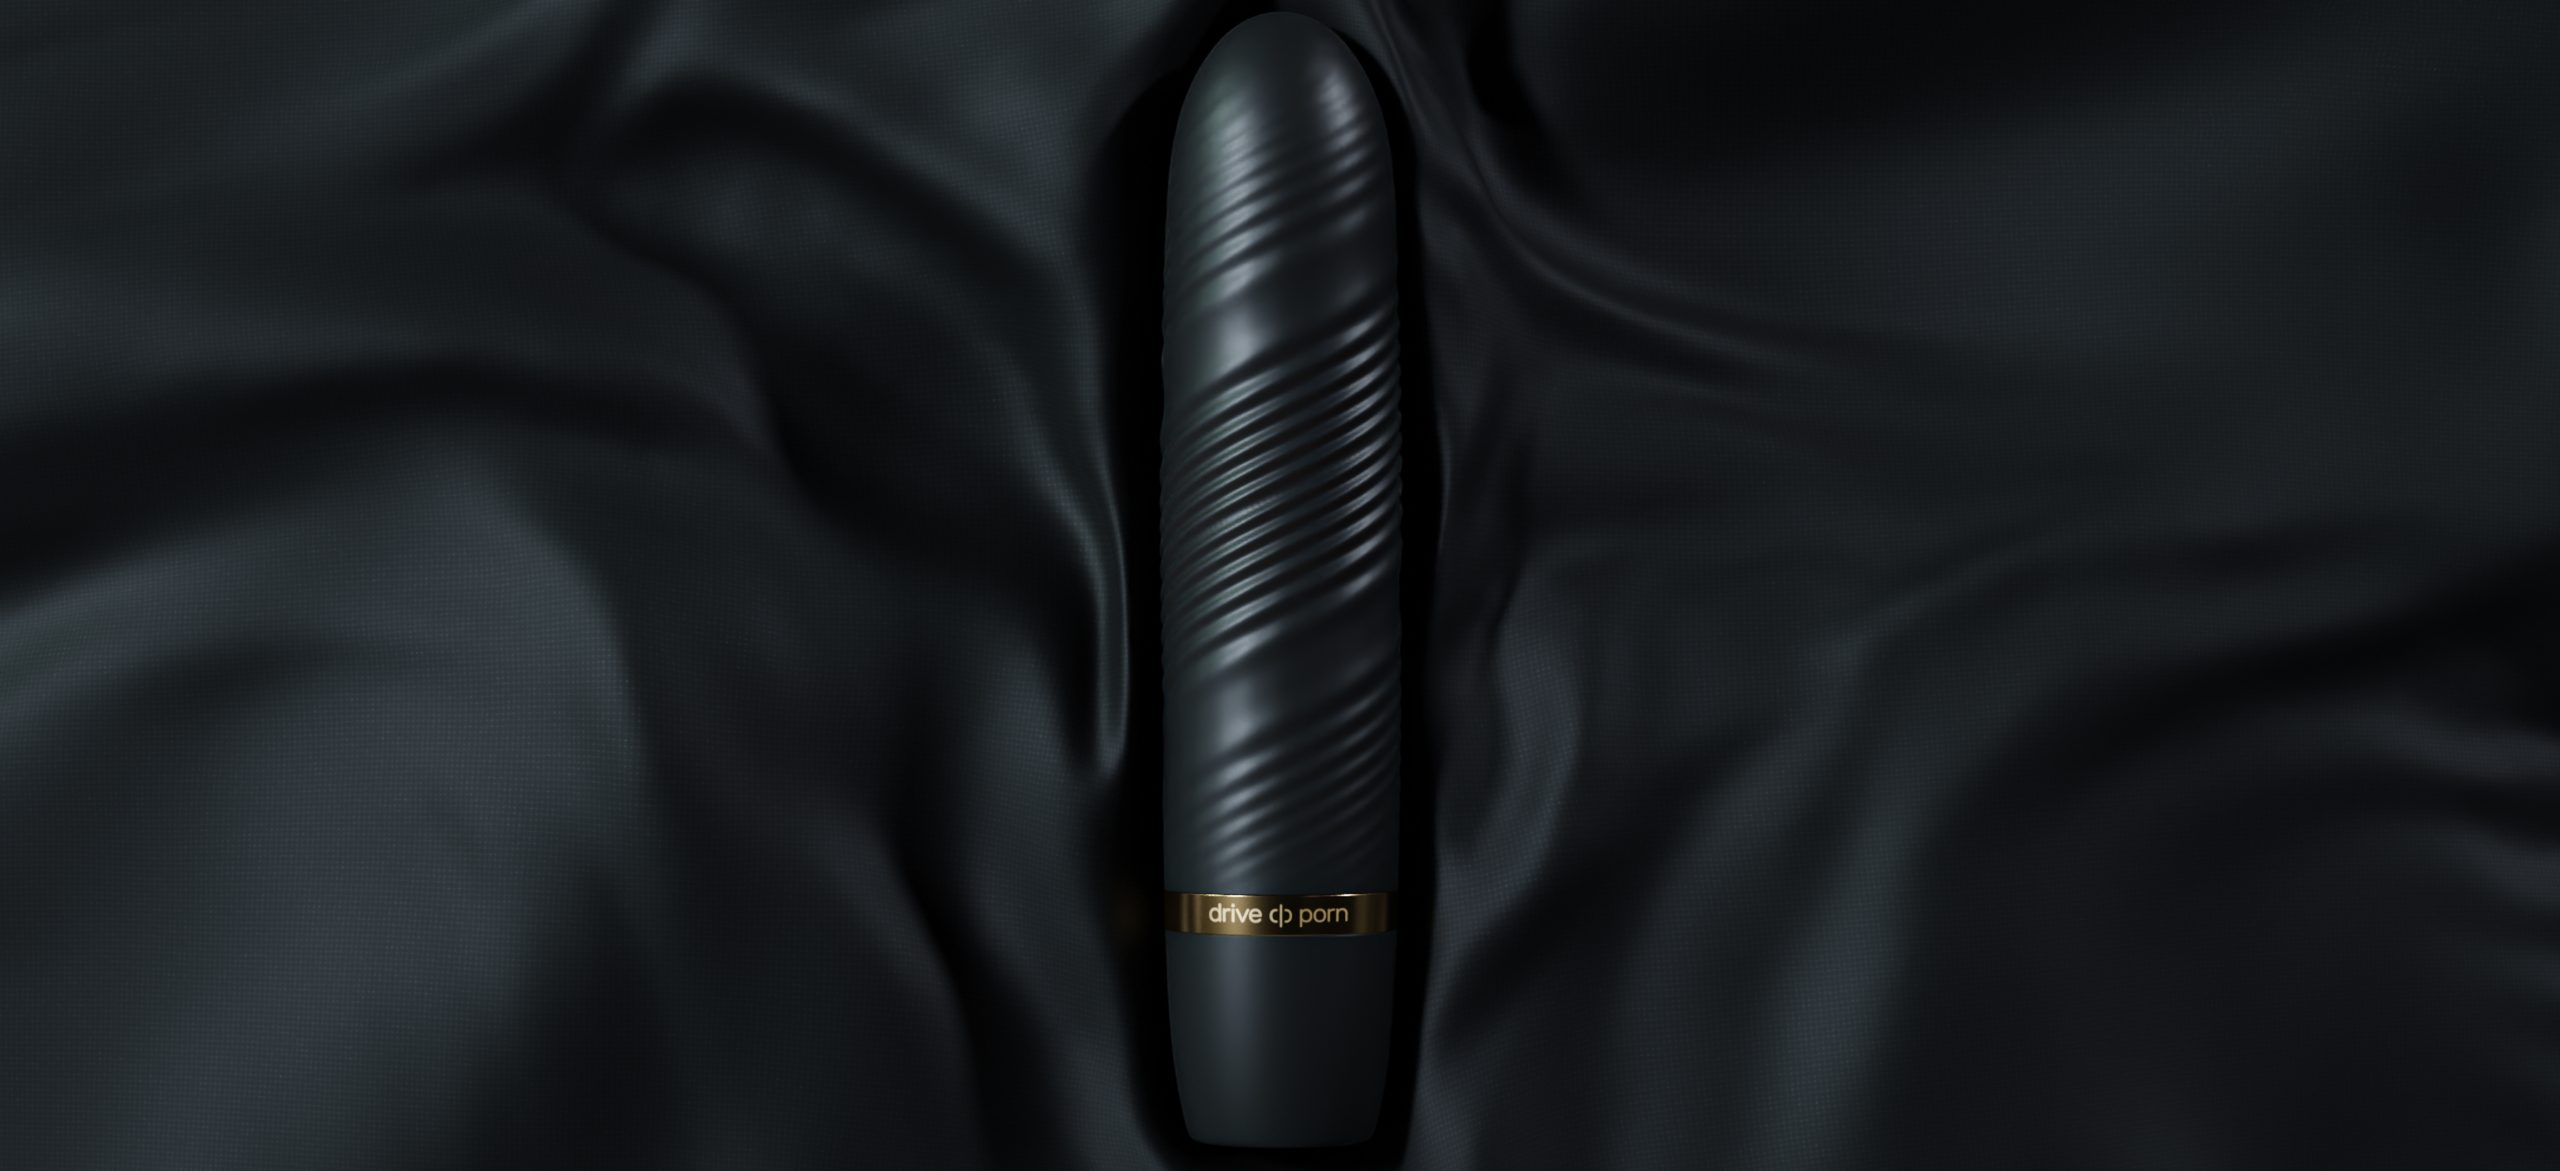 black adult toy with golden text lying on balck fabric